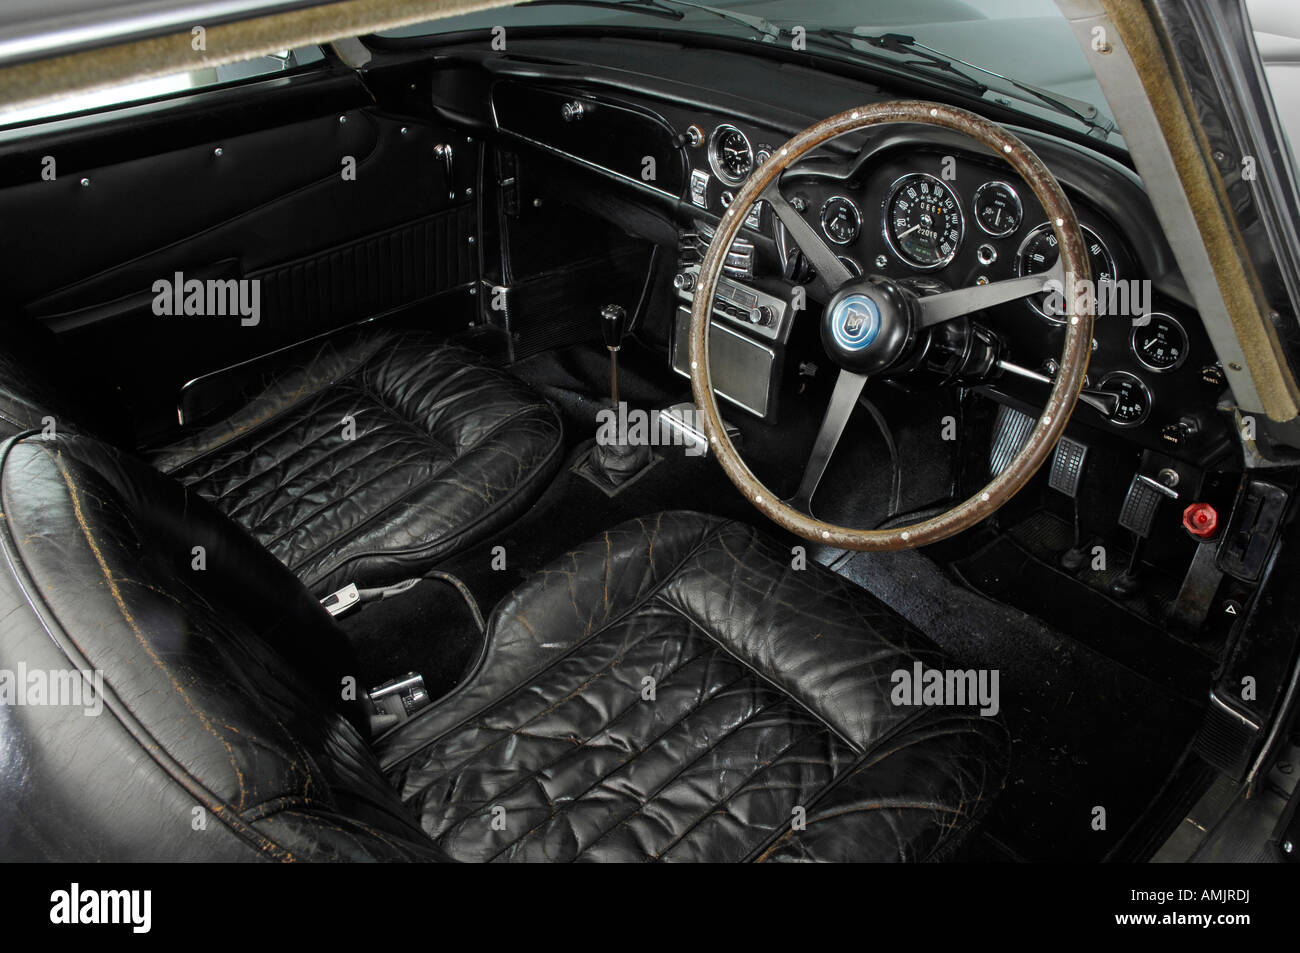 1964 aston martin db5 interior stock photo: 15280205 - alamy